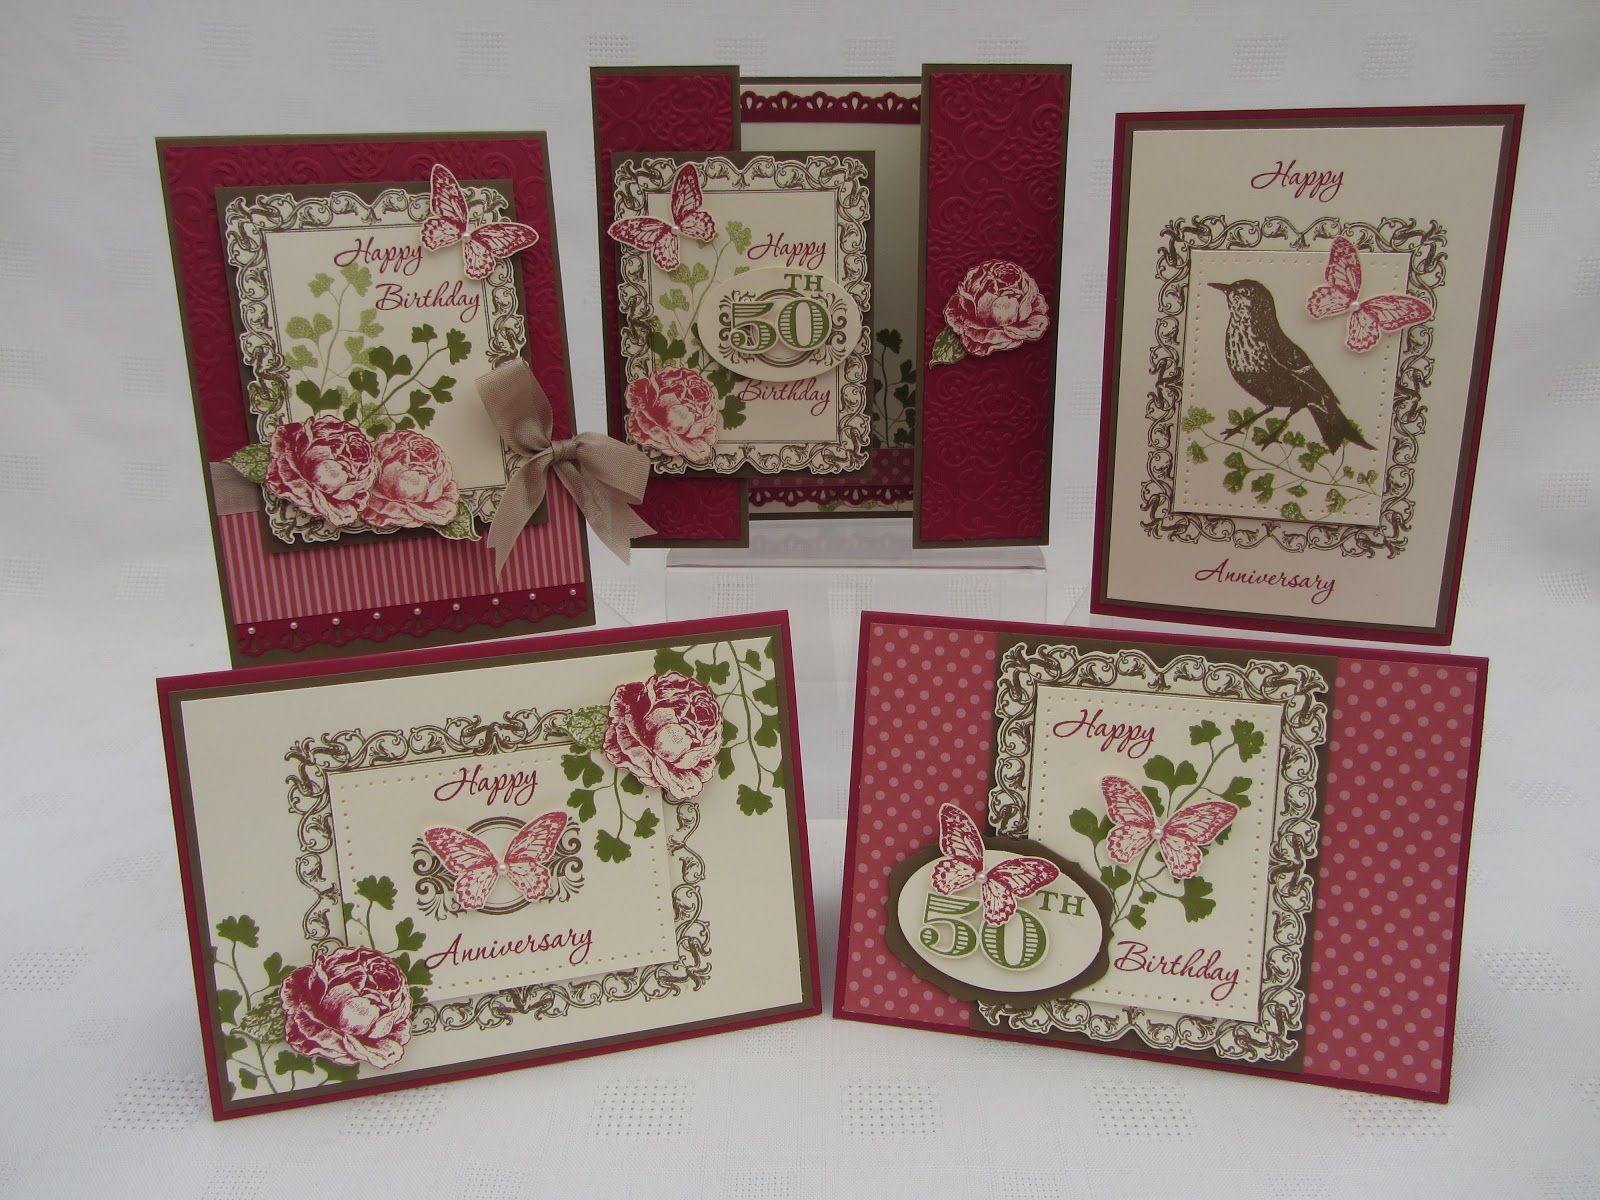 Amazing creations from Jenny using the Papaya Collage Stamp set and